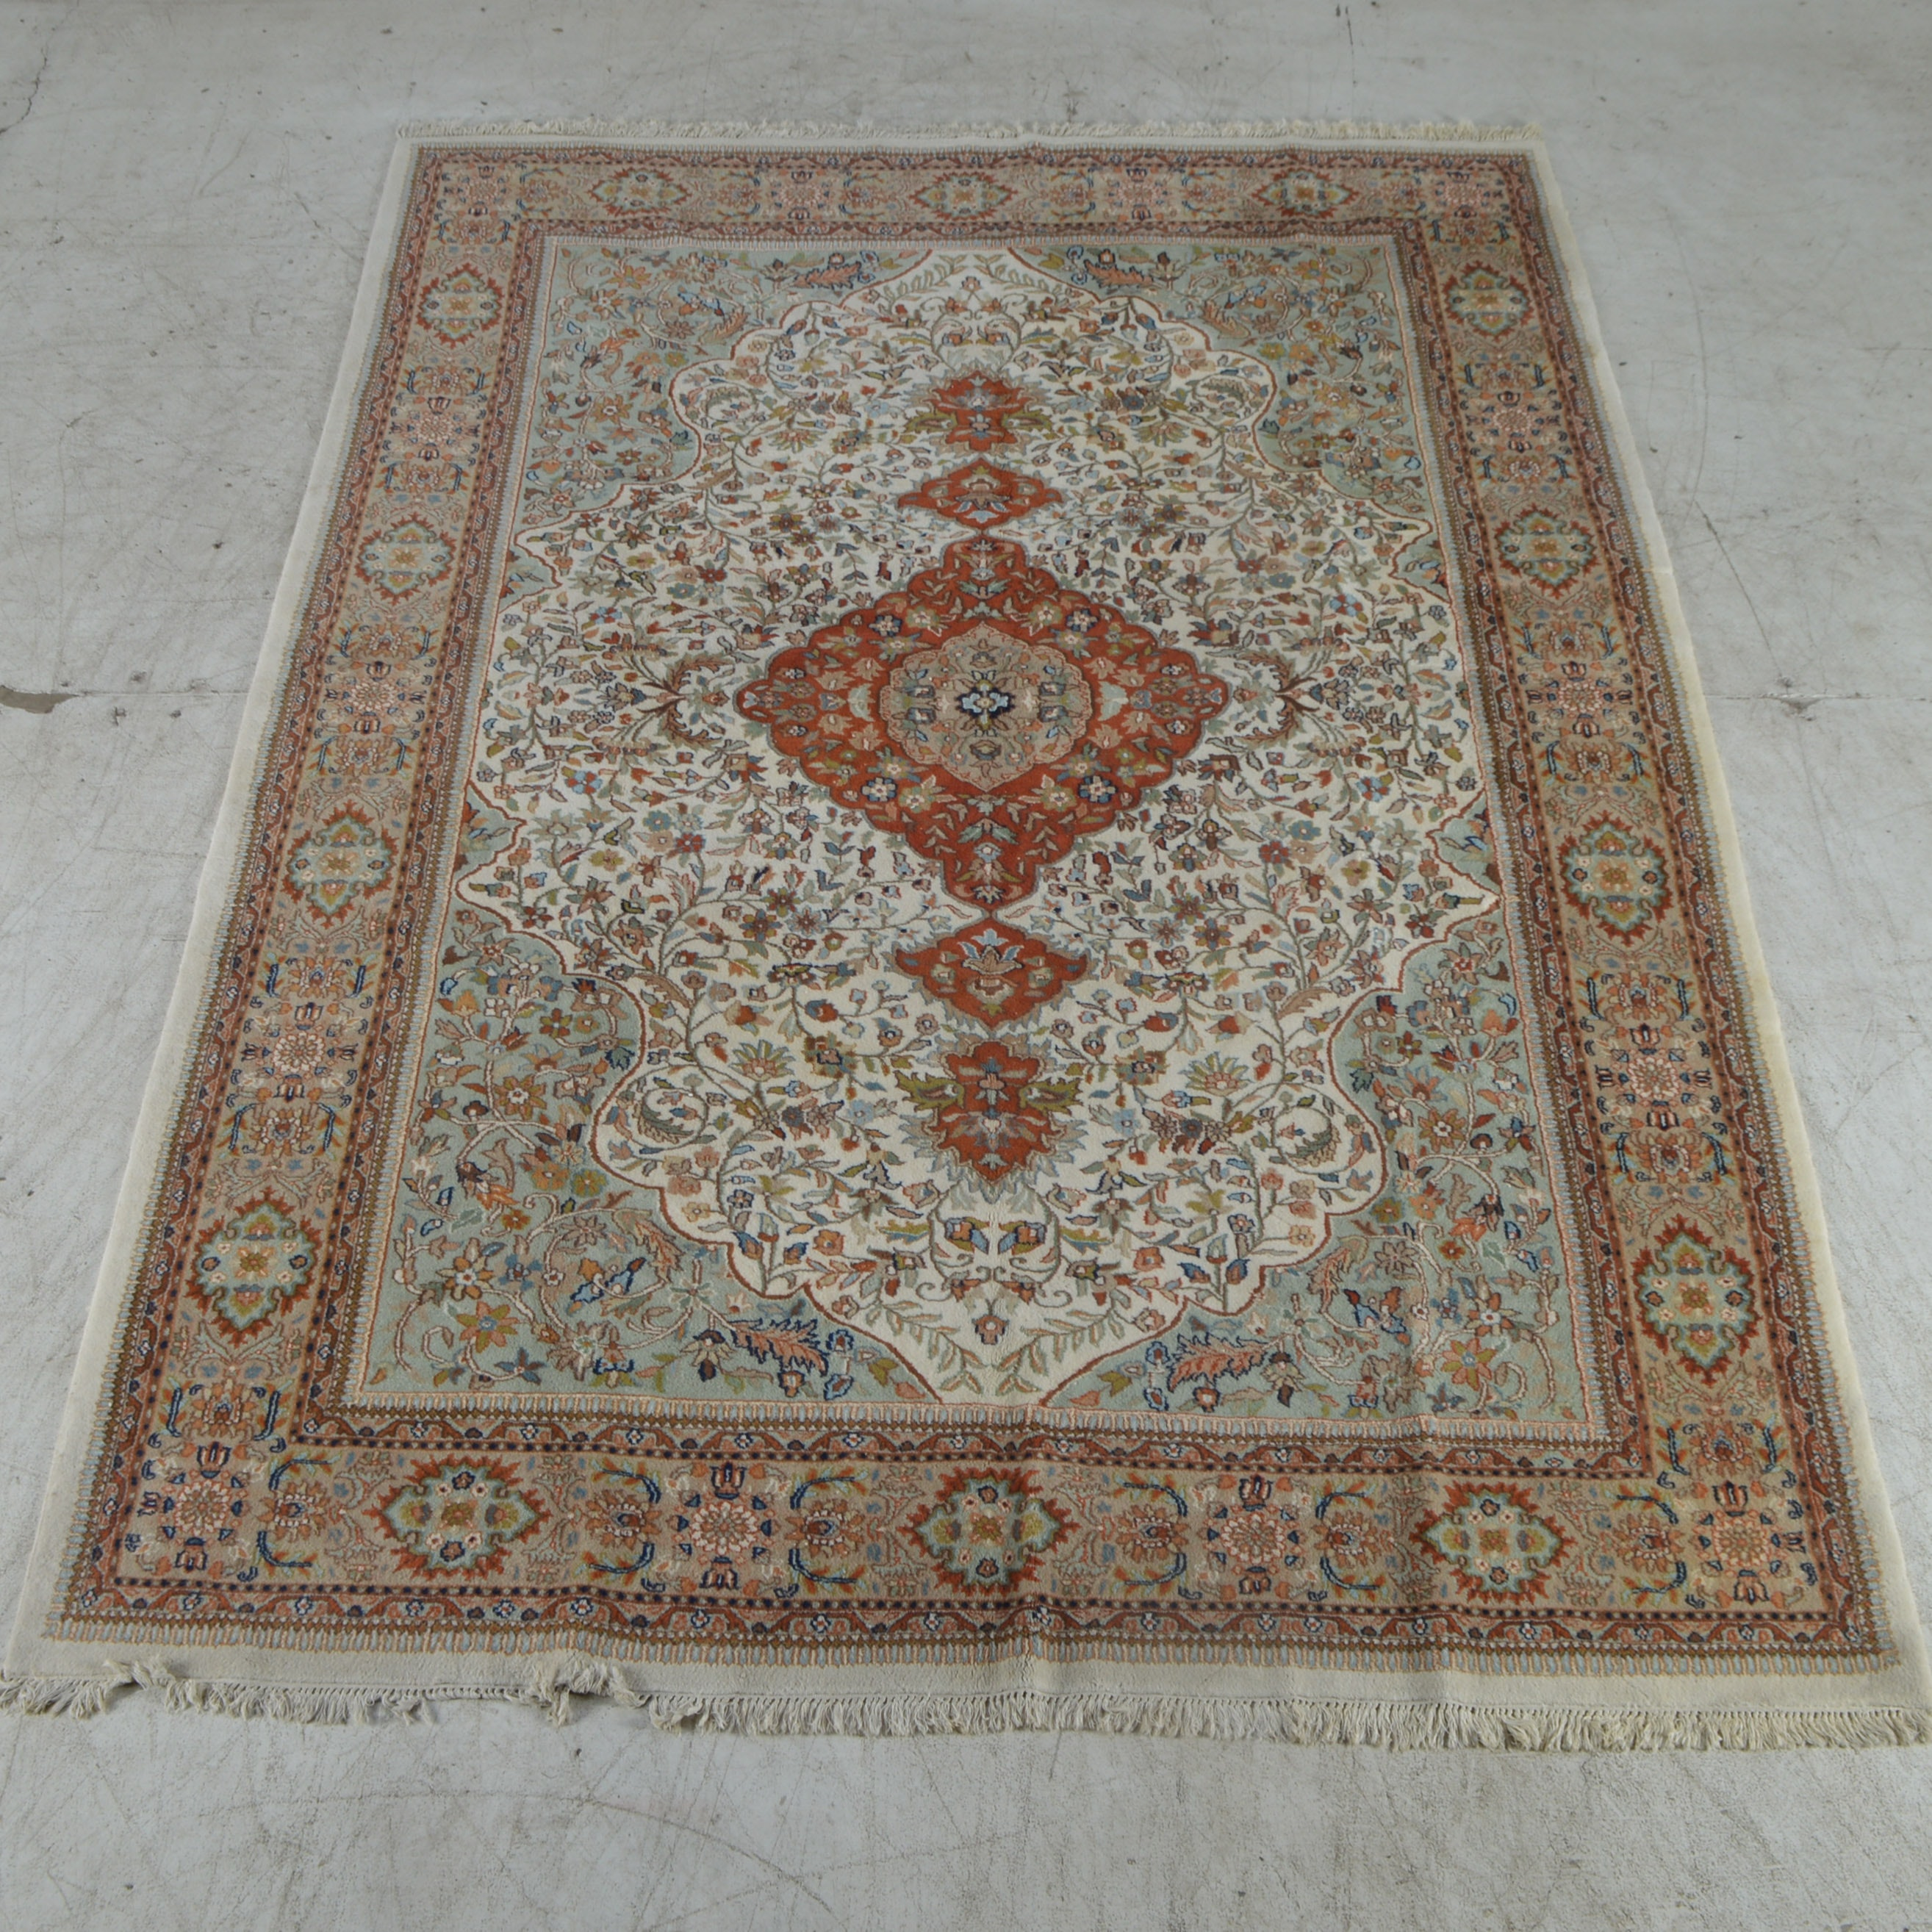 Hand-Knotted Persian-Inspired Room-Size Medallion Area Rug